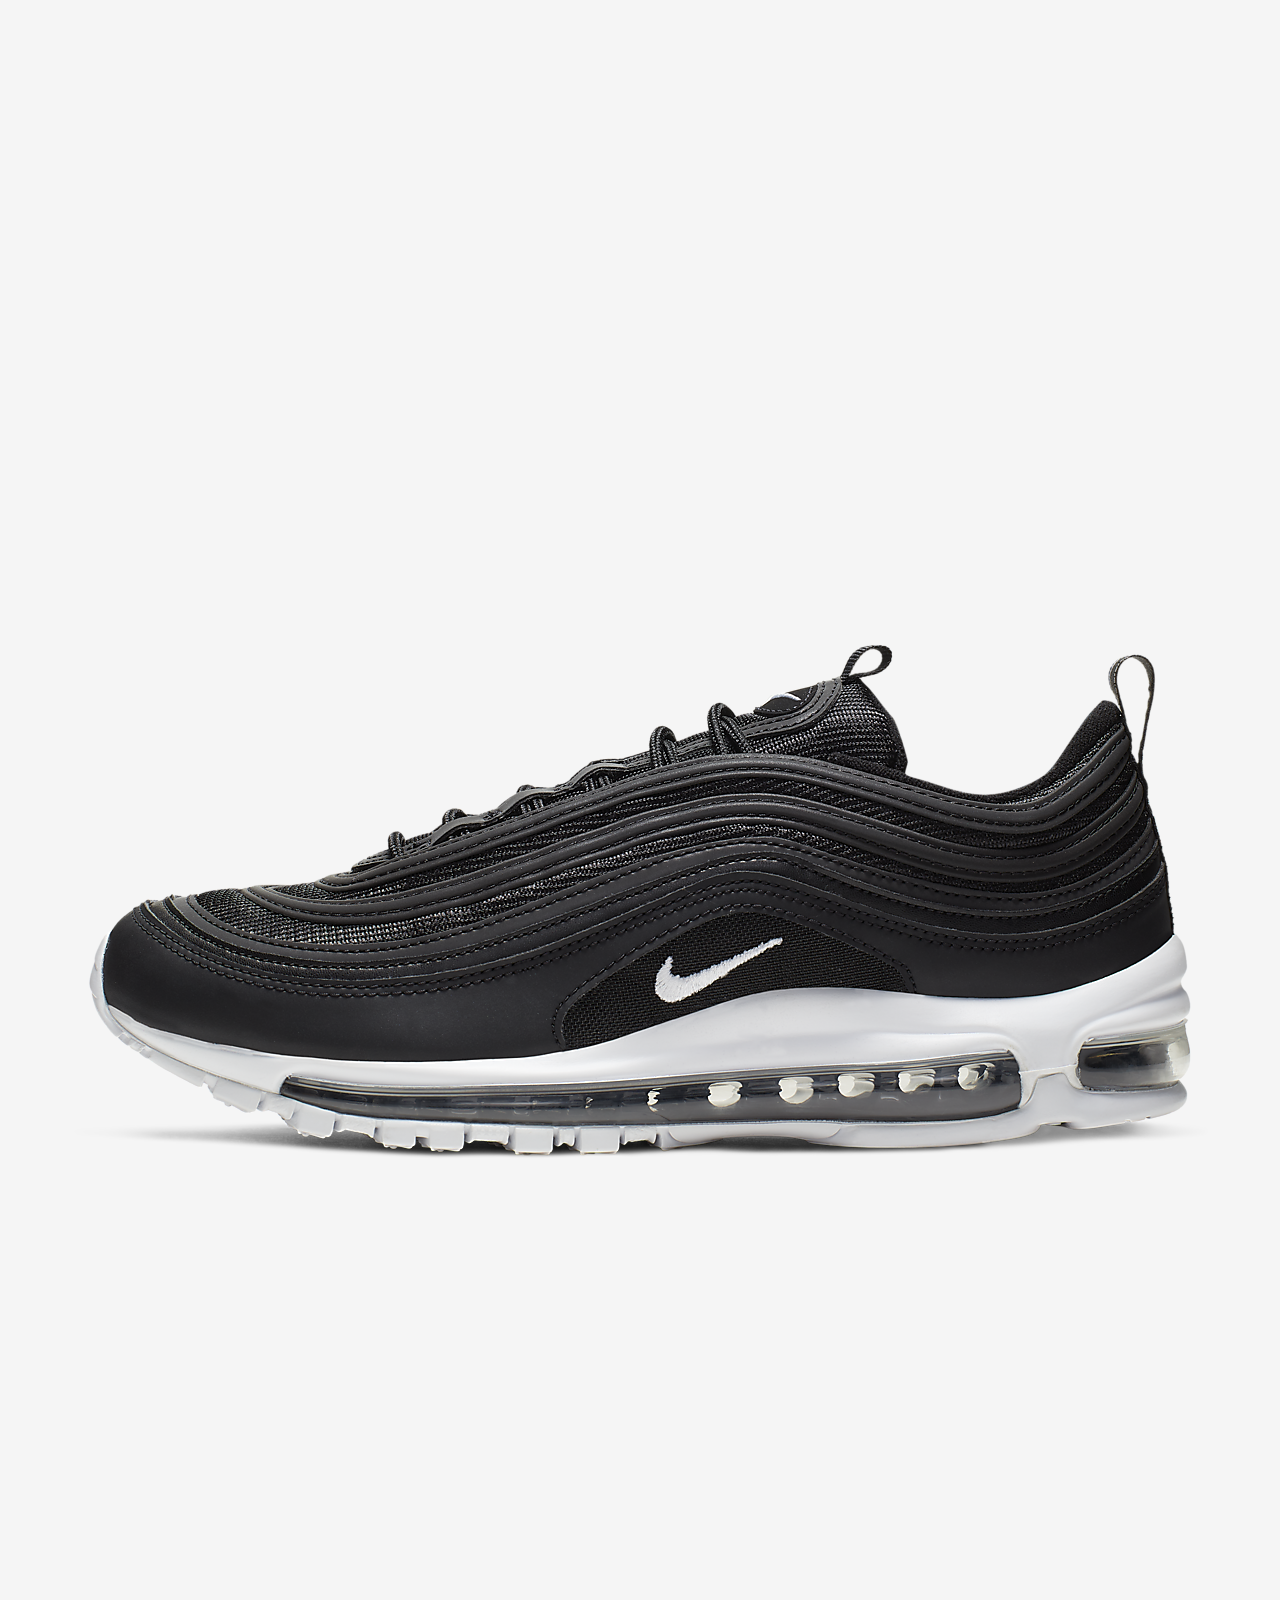 Nike Air Max 97 Junior Grey Kids from Jd 21 Buttons